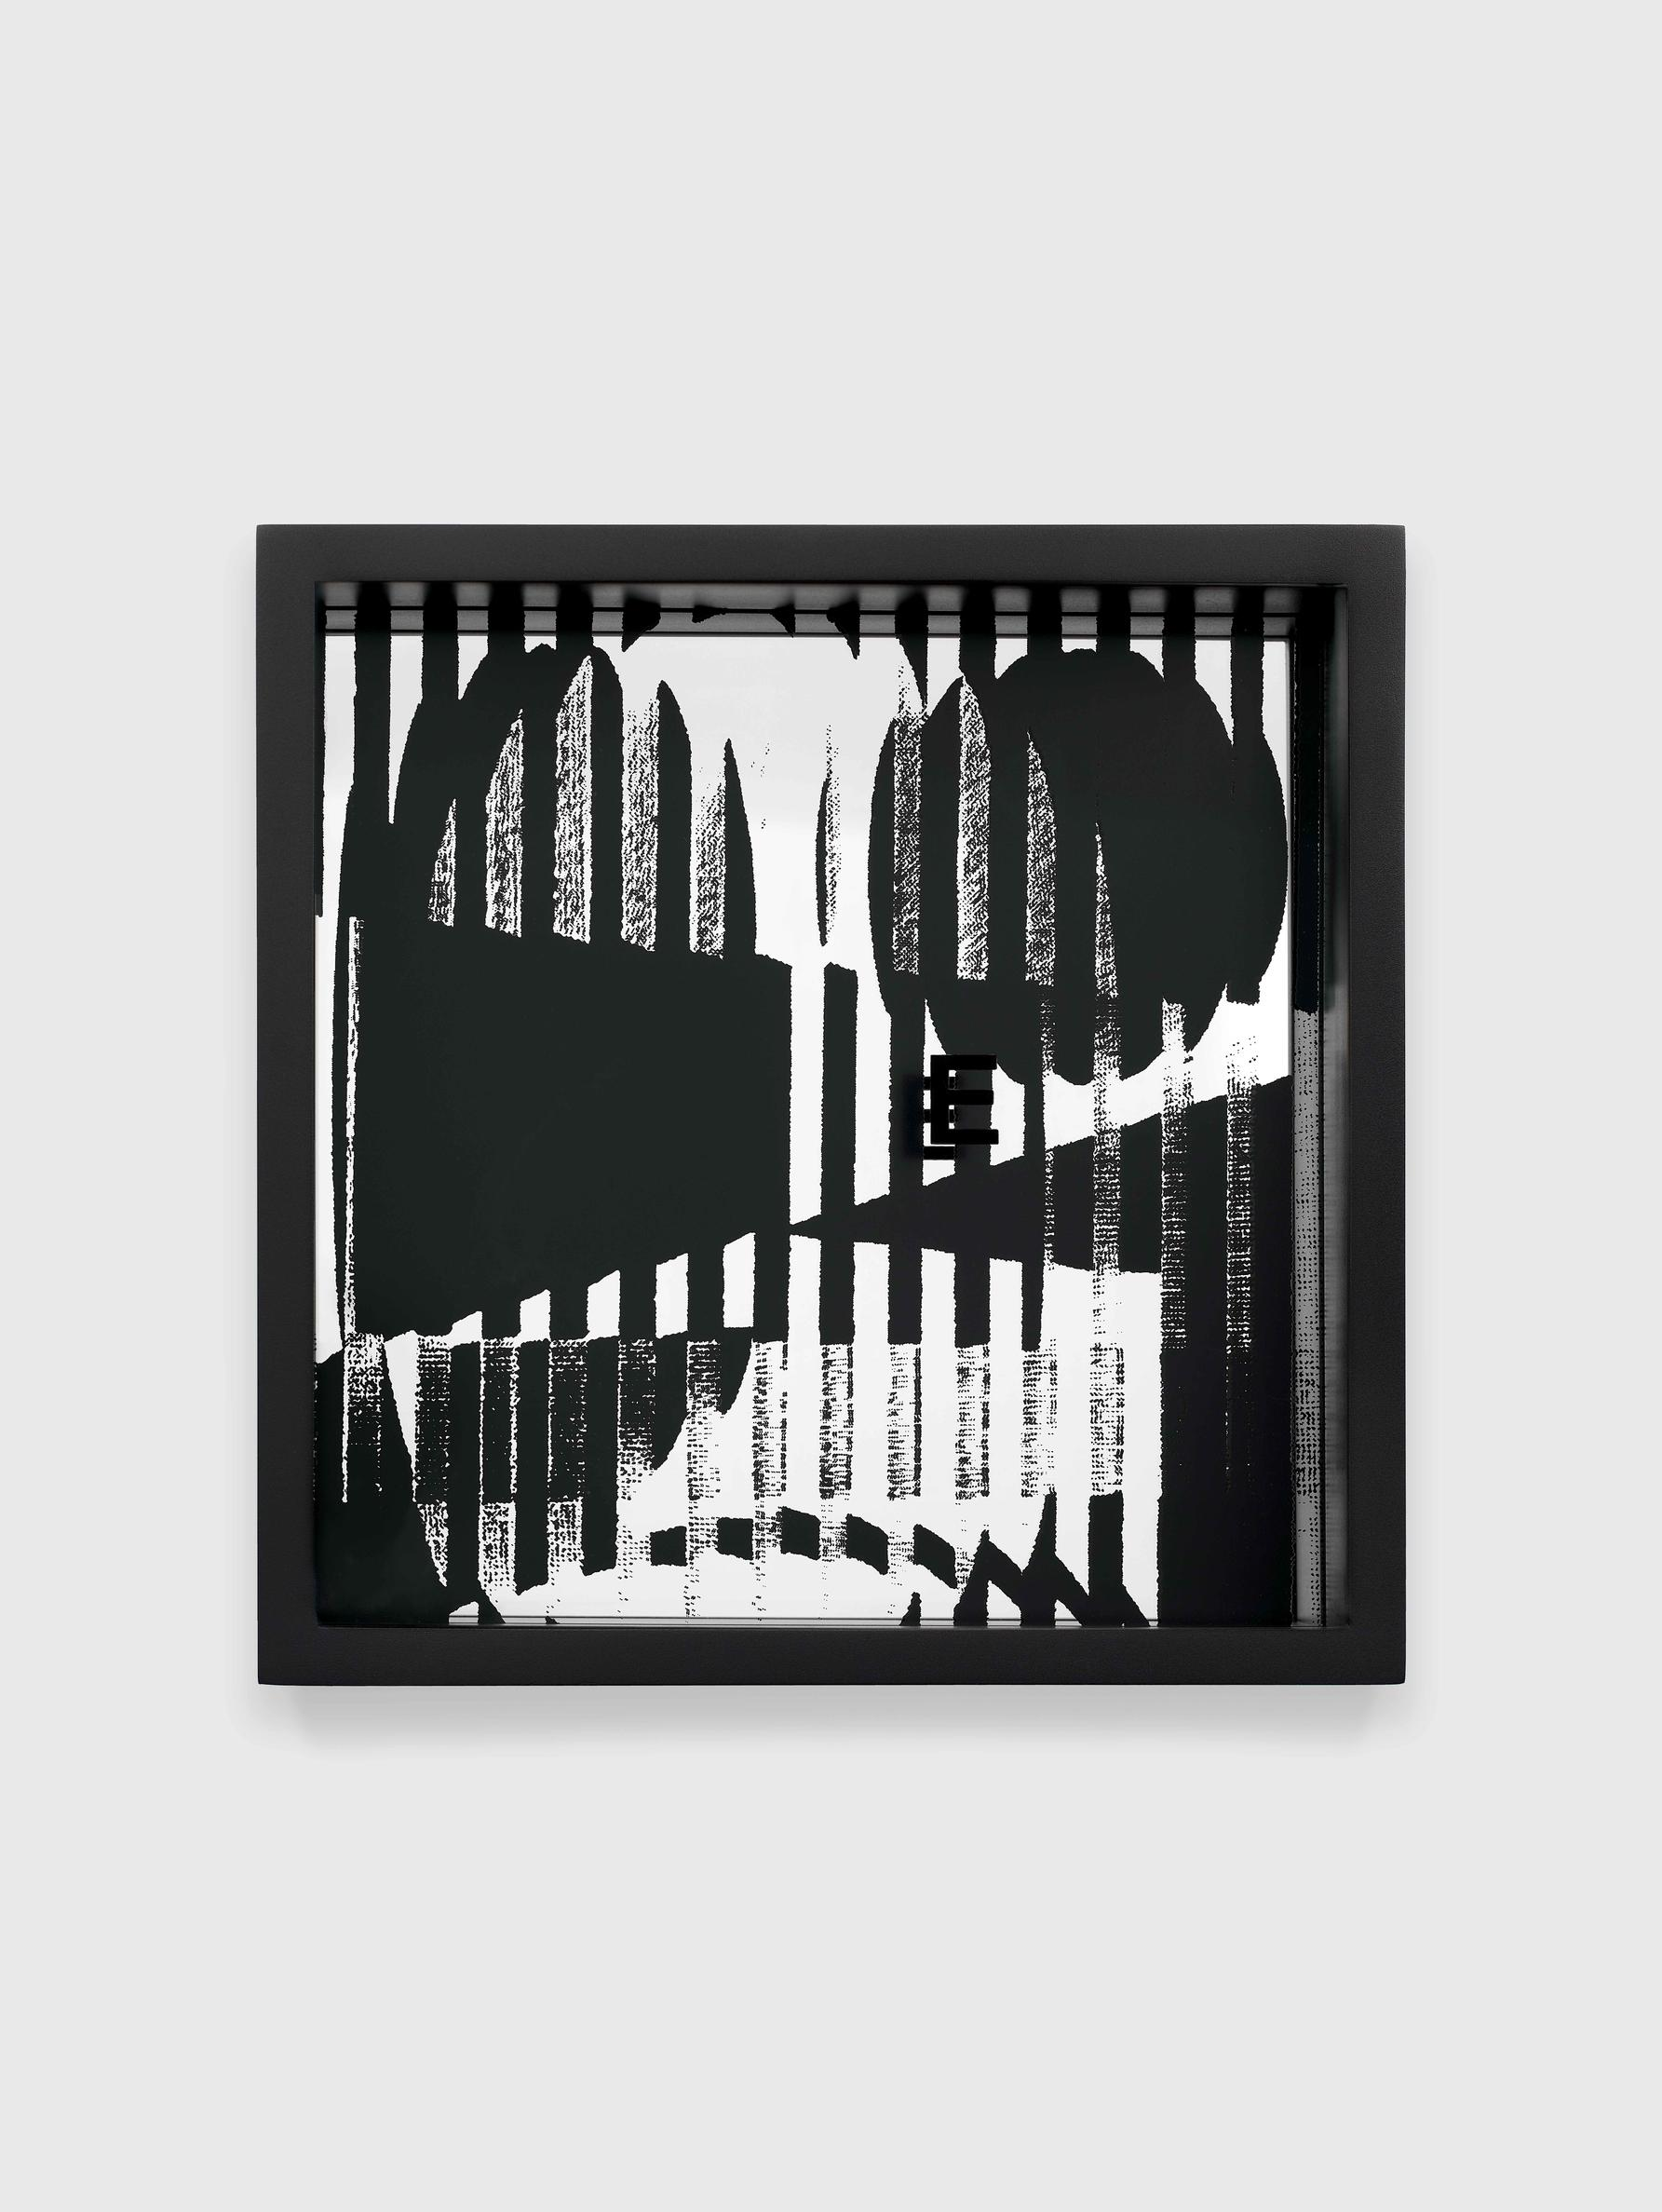 Adam Pendleton, System of Display, E (HERE/Yaacov Agam, Contrastes, 1957), 2018–19. Silkscreen ink on plexiglass and mirror, 9 13/16 × 9 13/16 × 3 1/8 in (24.92 × 24.92 × 7.94 cm).